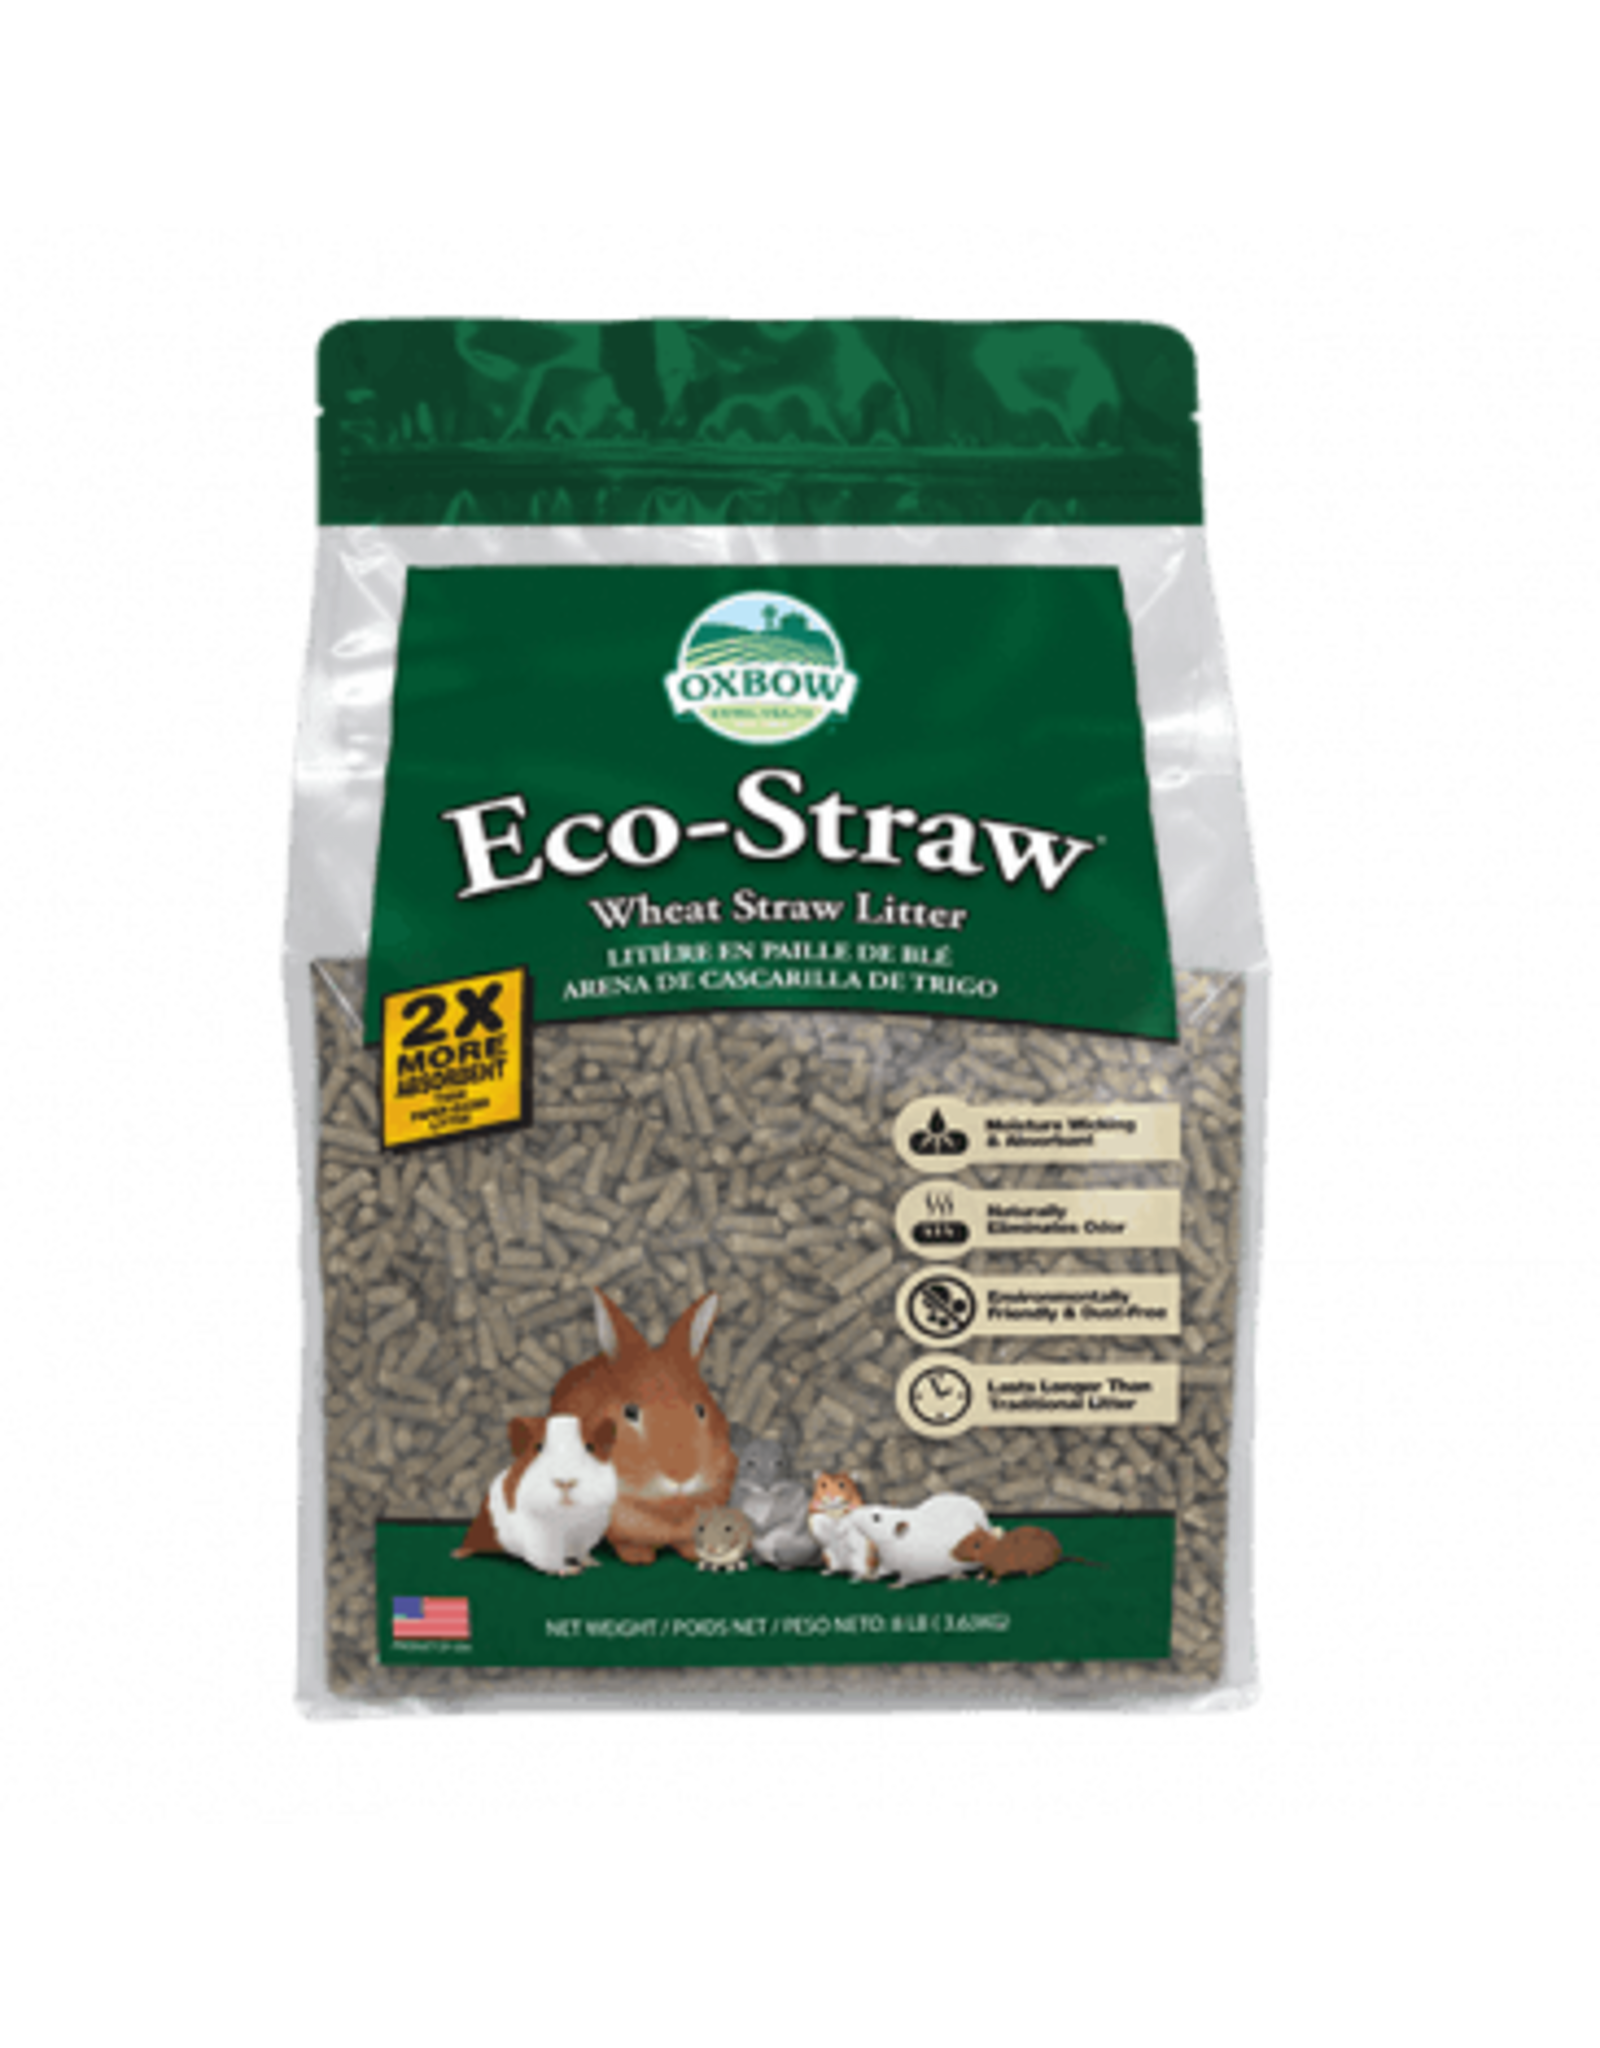 Oxbow Oxbow rongeur litiere Eco-straw granules de blé 20 lbs